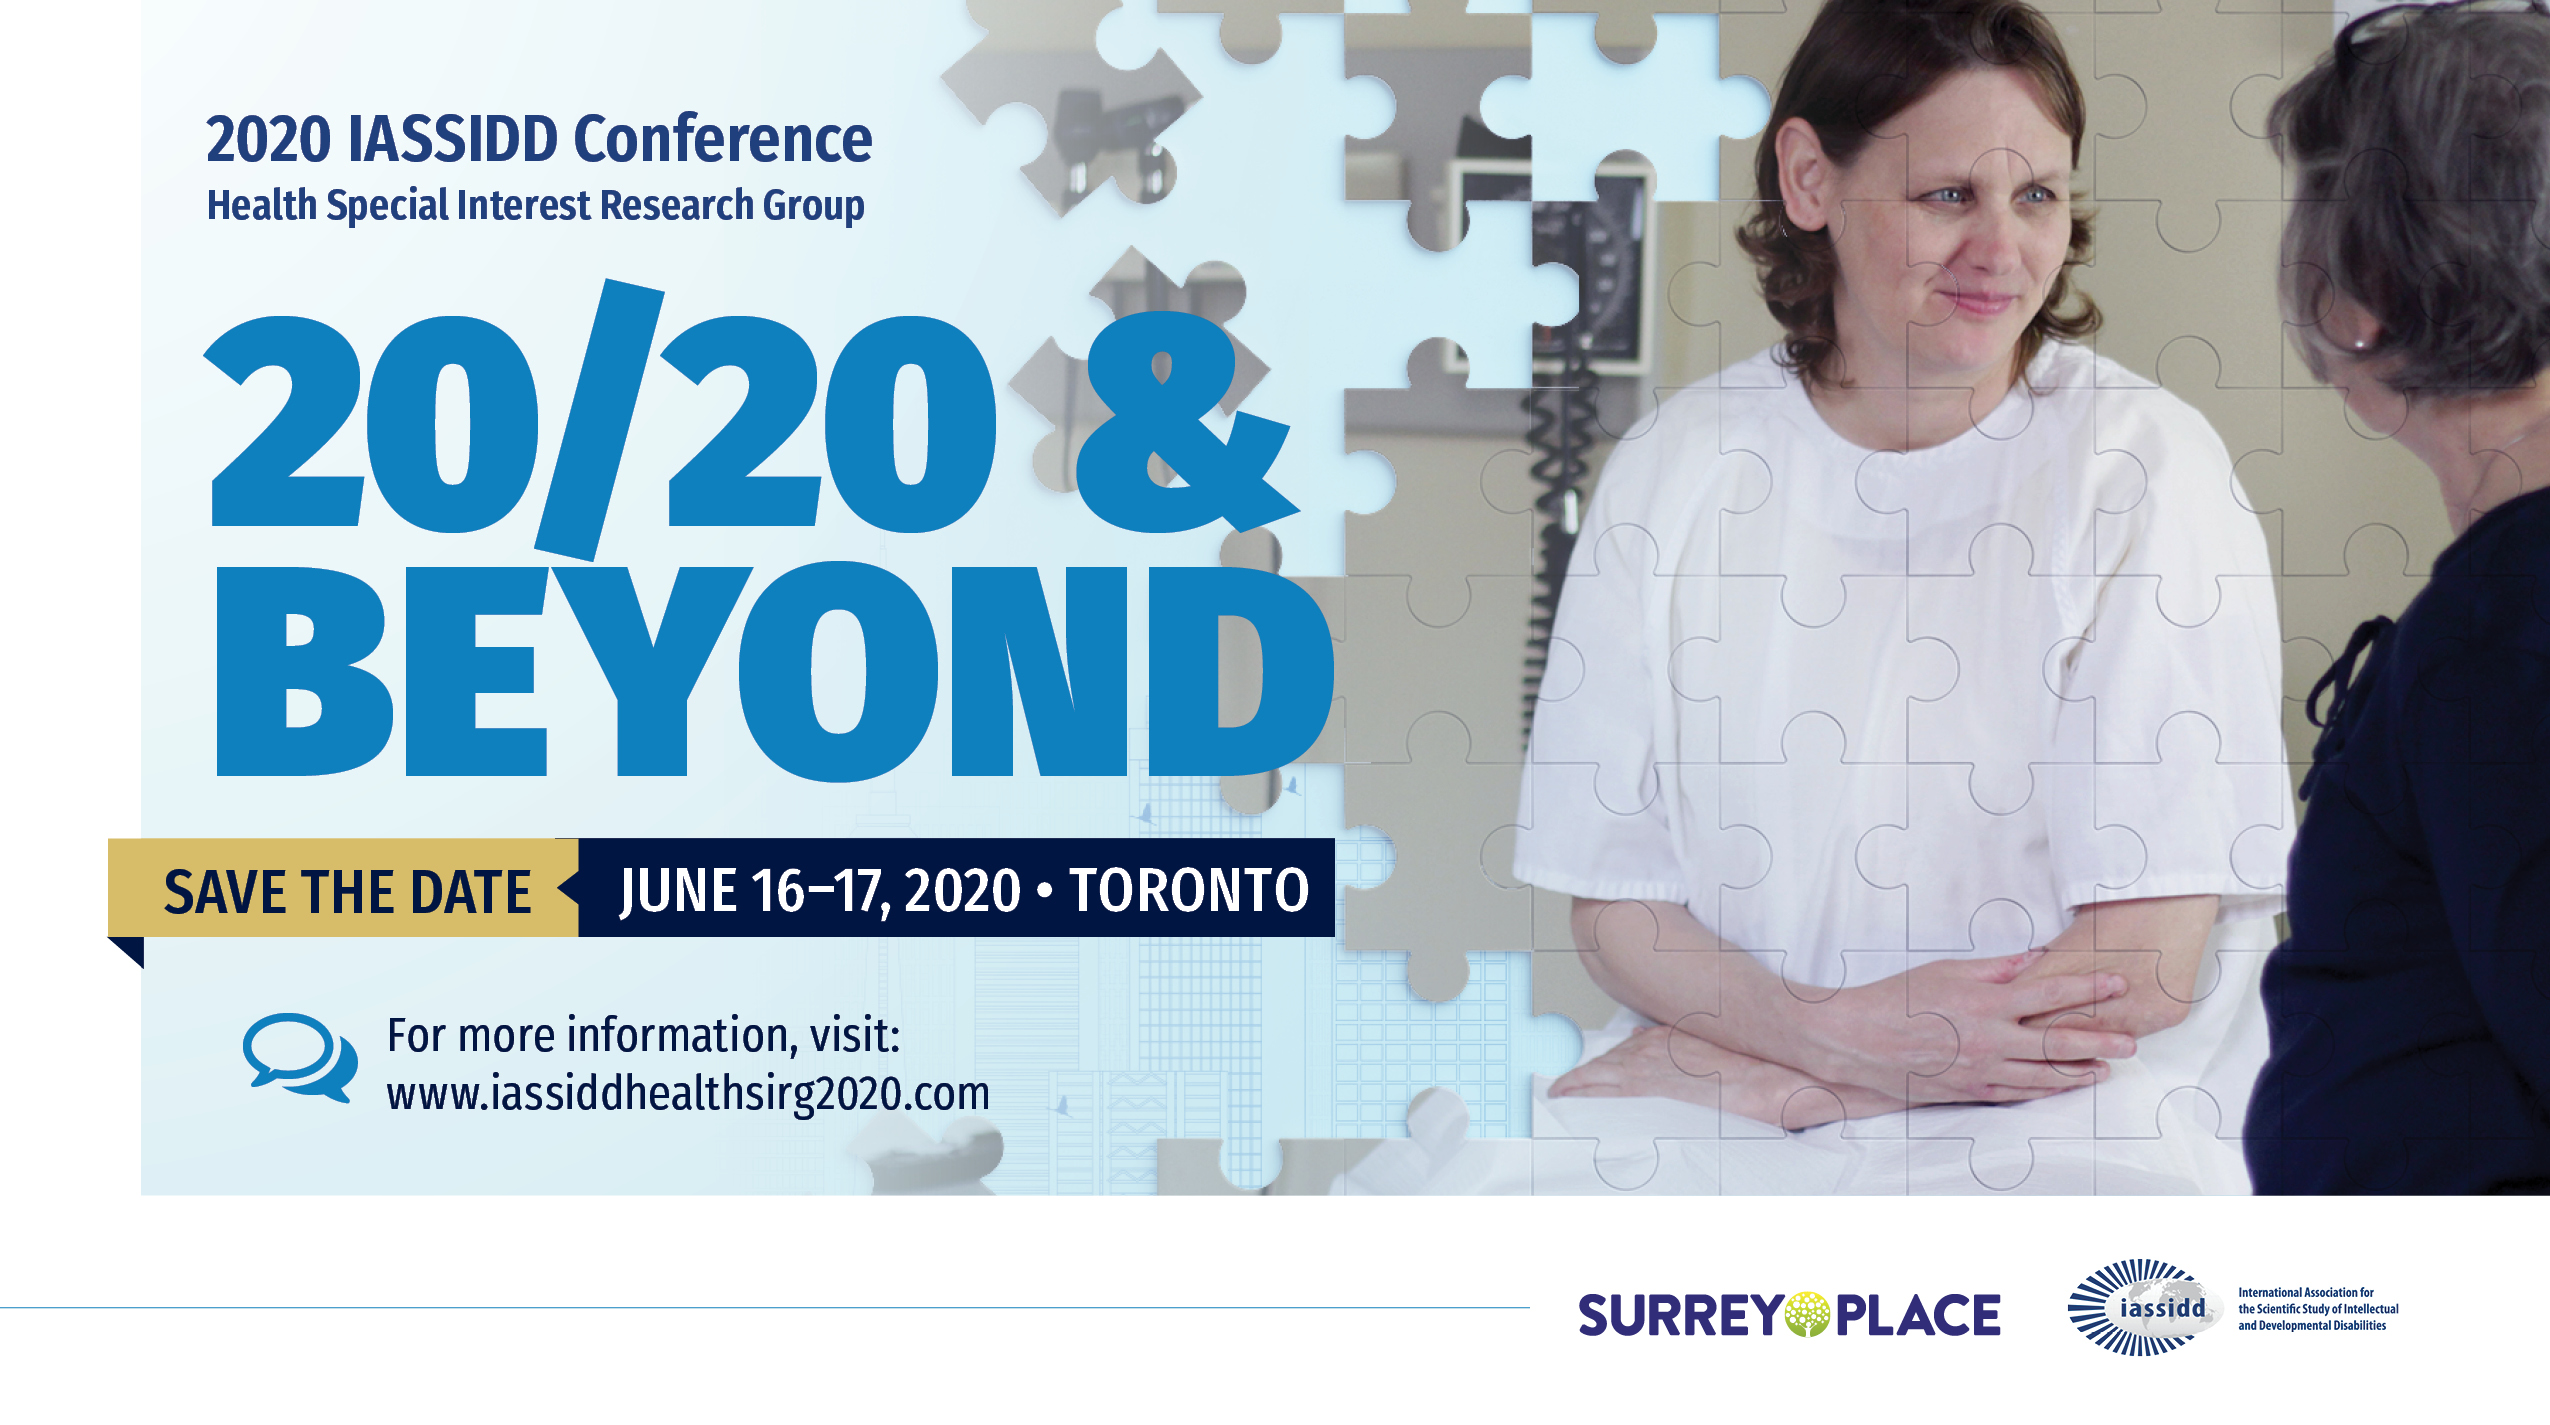 """Banner for the 2020 IASSIDD conference for the Health Special Interest Research Group. The title of the conference is """"20/20 & Beyond"""" and will be held on June 16 and 17, 2020 in Toronto."""